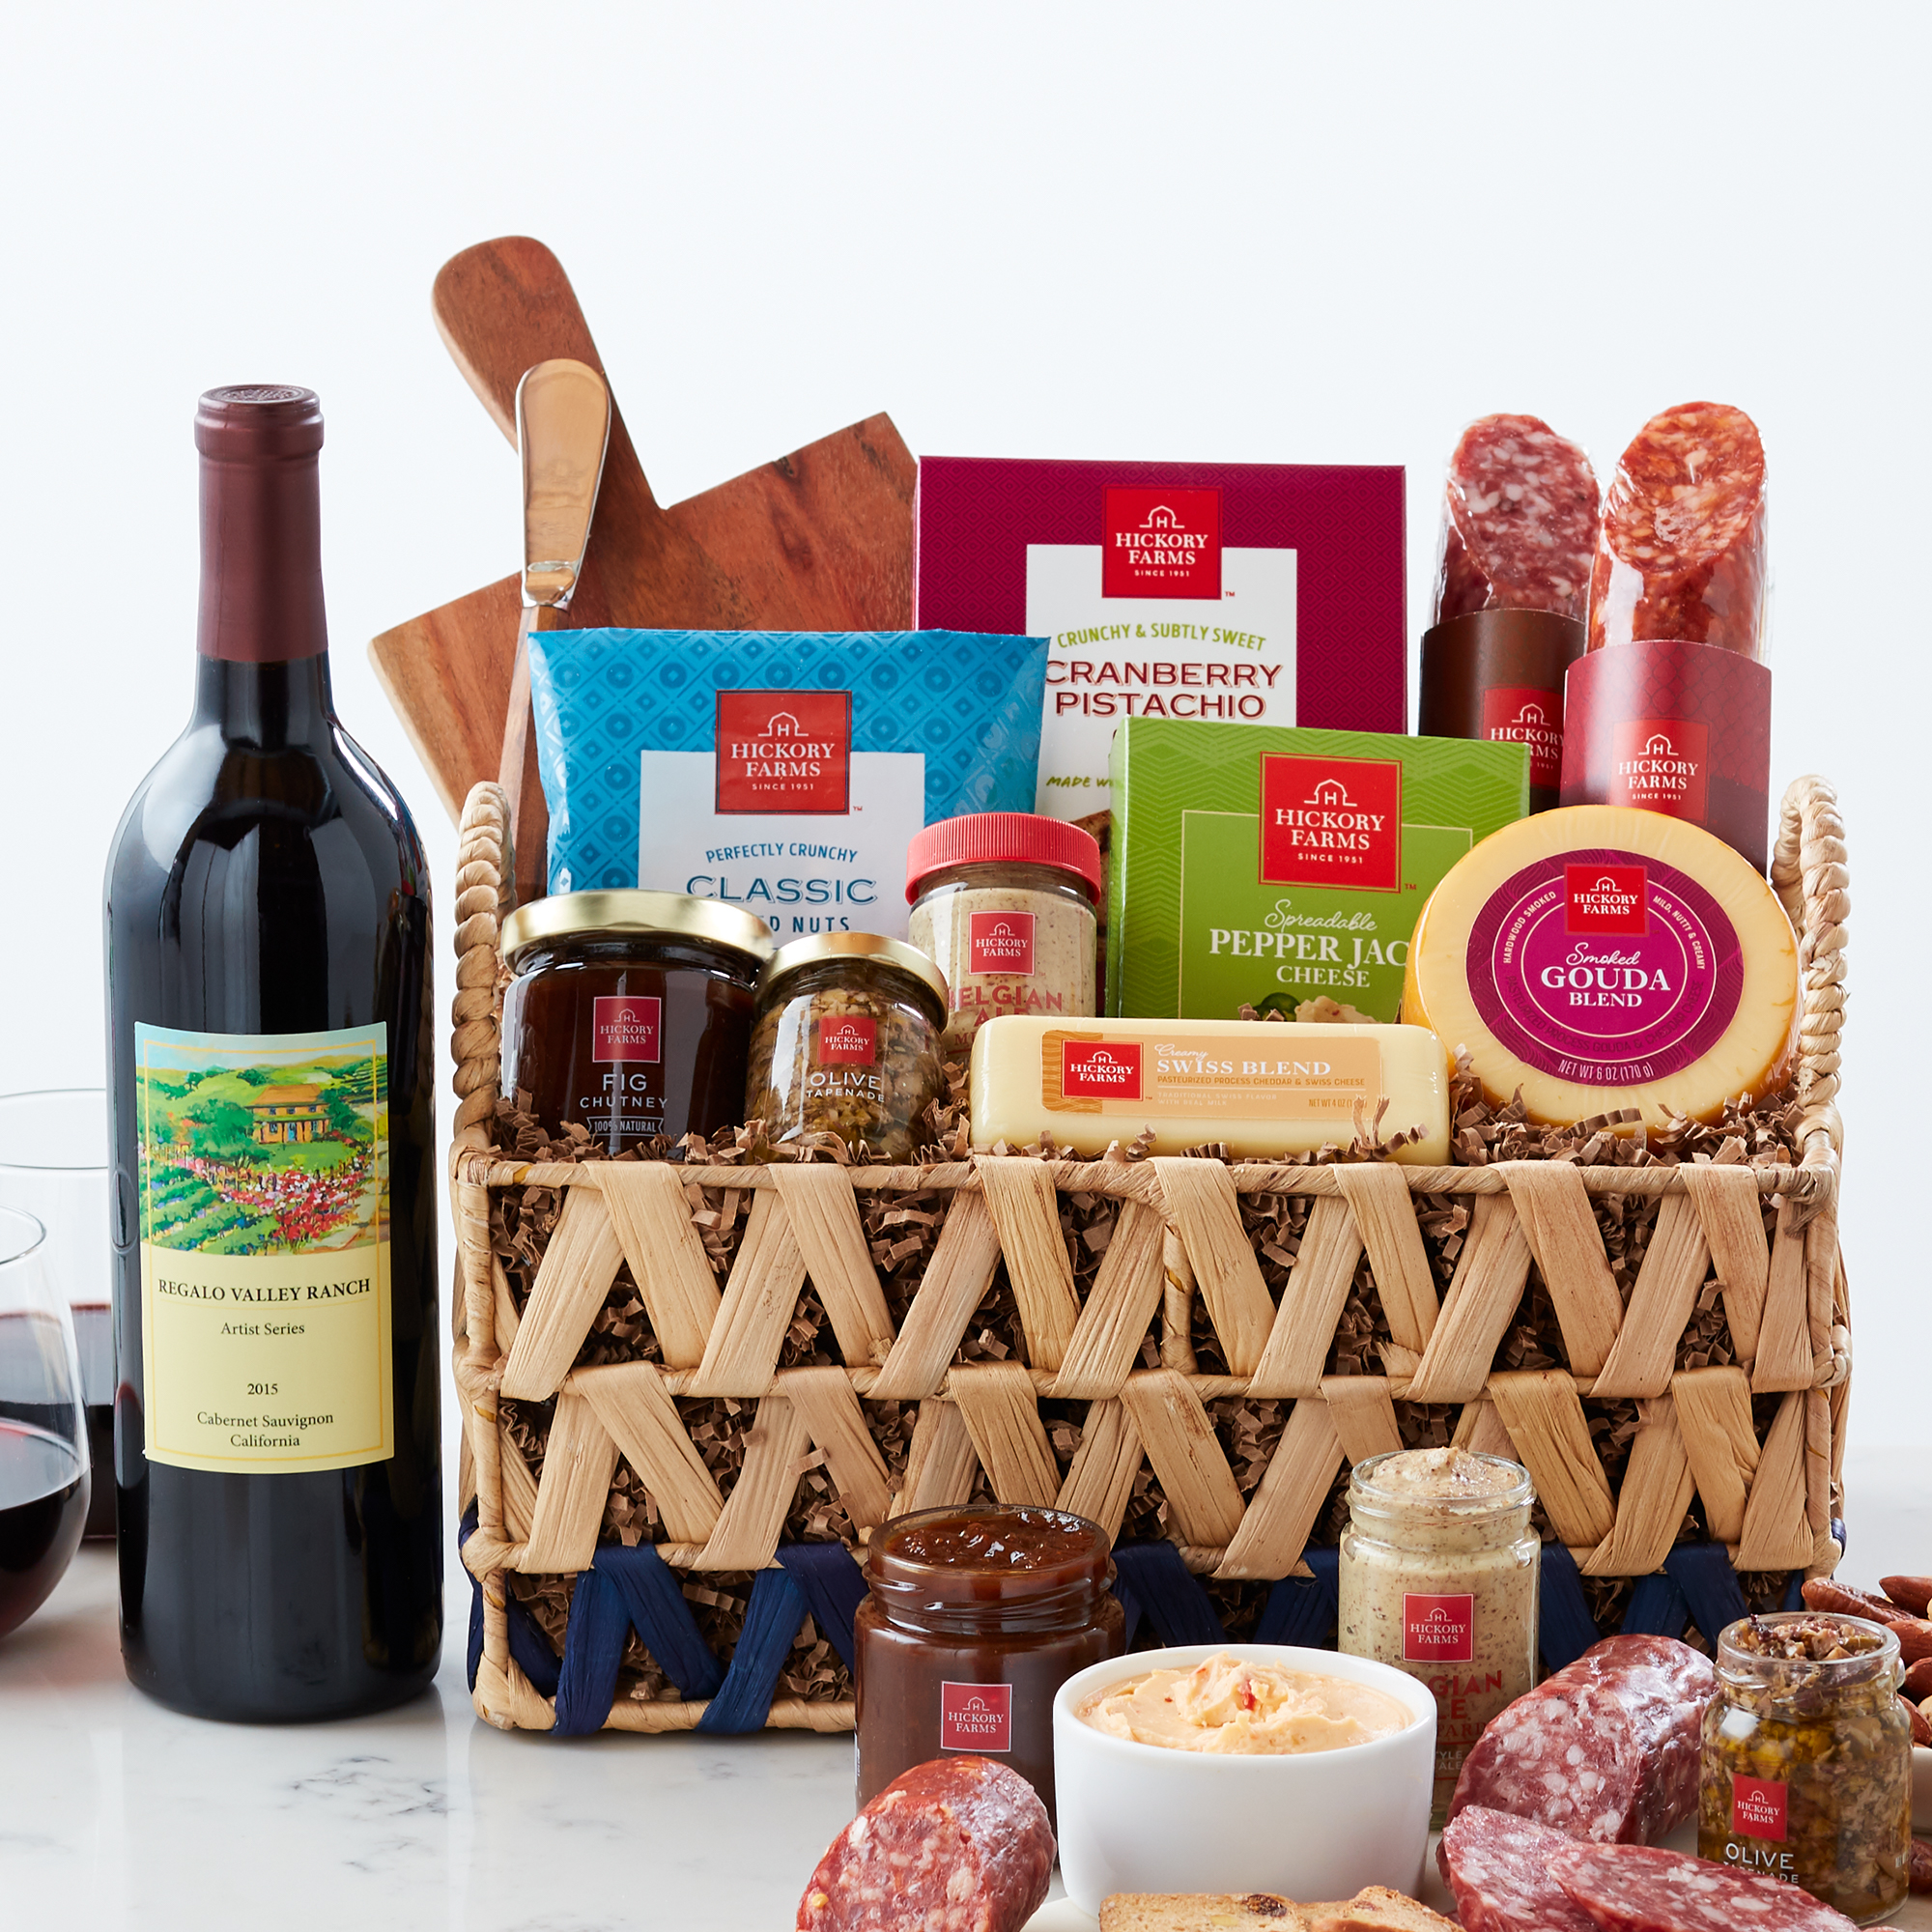 This basket is filled with savory salami, cheeses, mustard, chutney, tapenade,